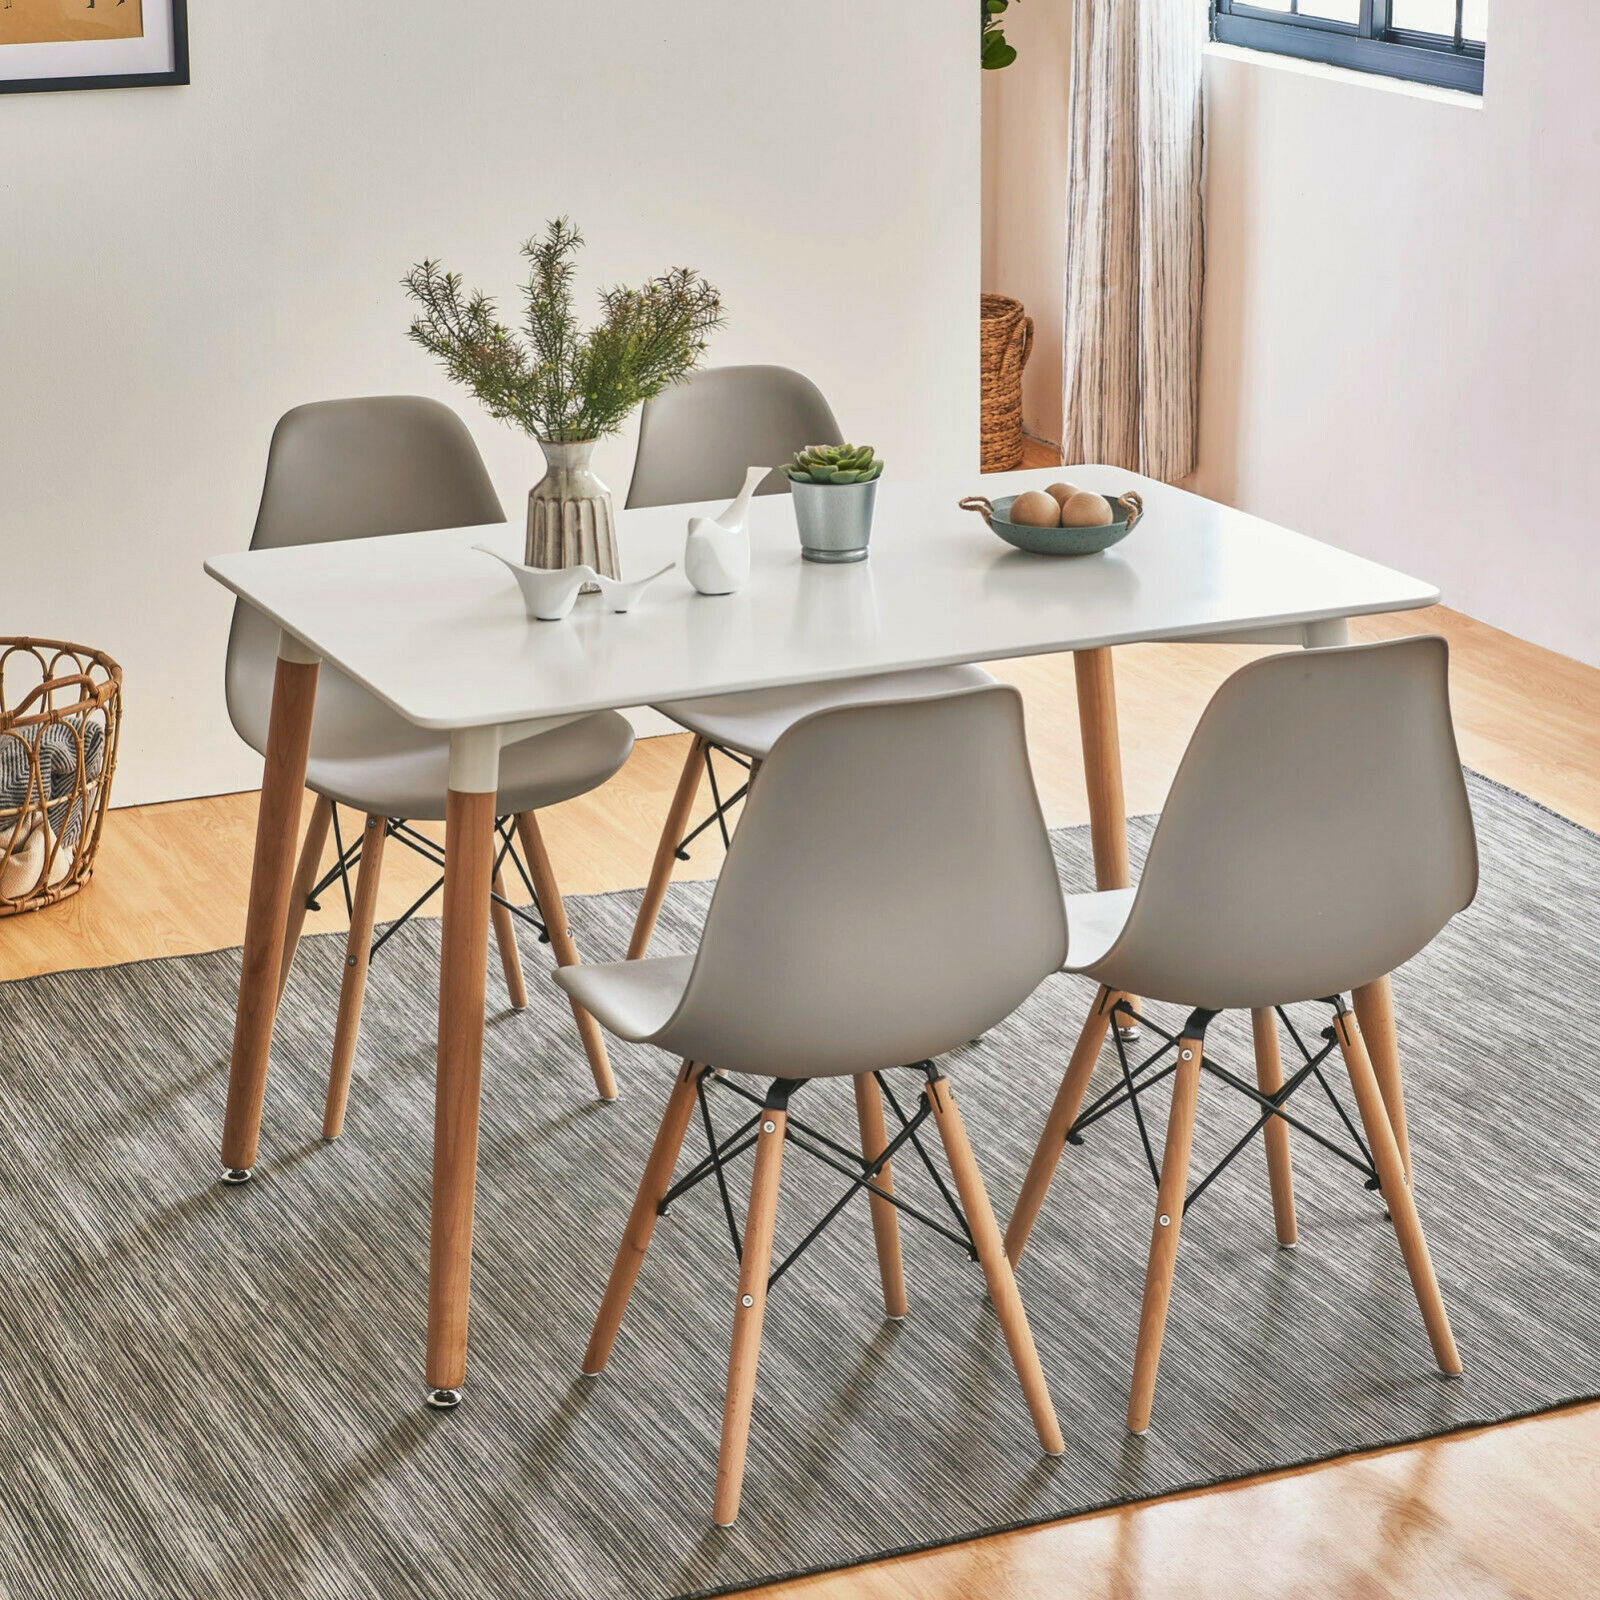 Cucina Letters Kitchen Decor, Corona 6ft Dining Set Table With 6 Chairs For Sale Ebay